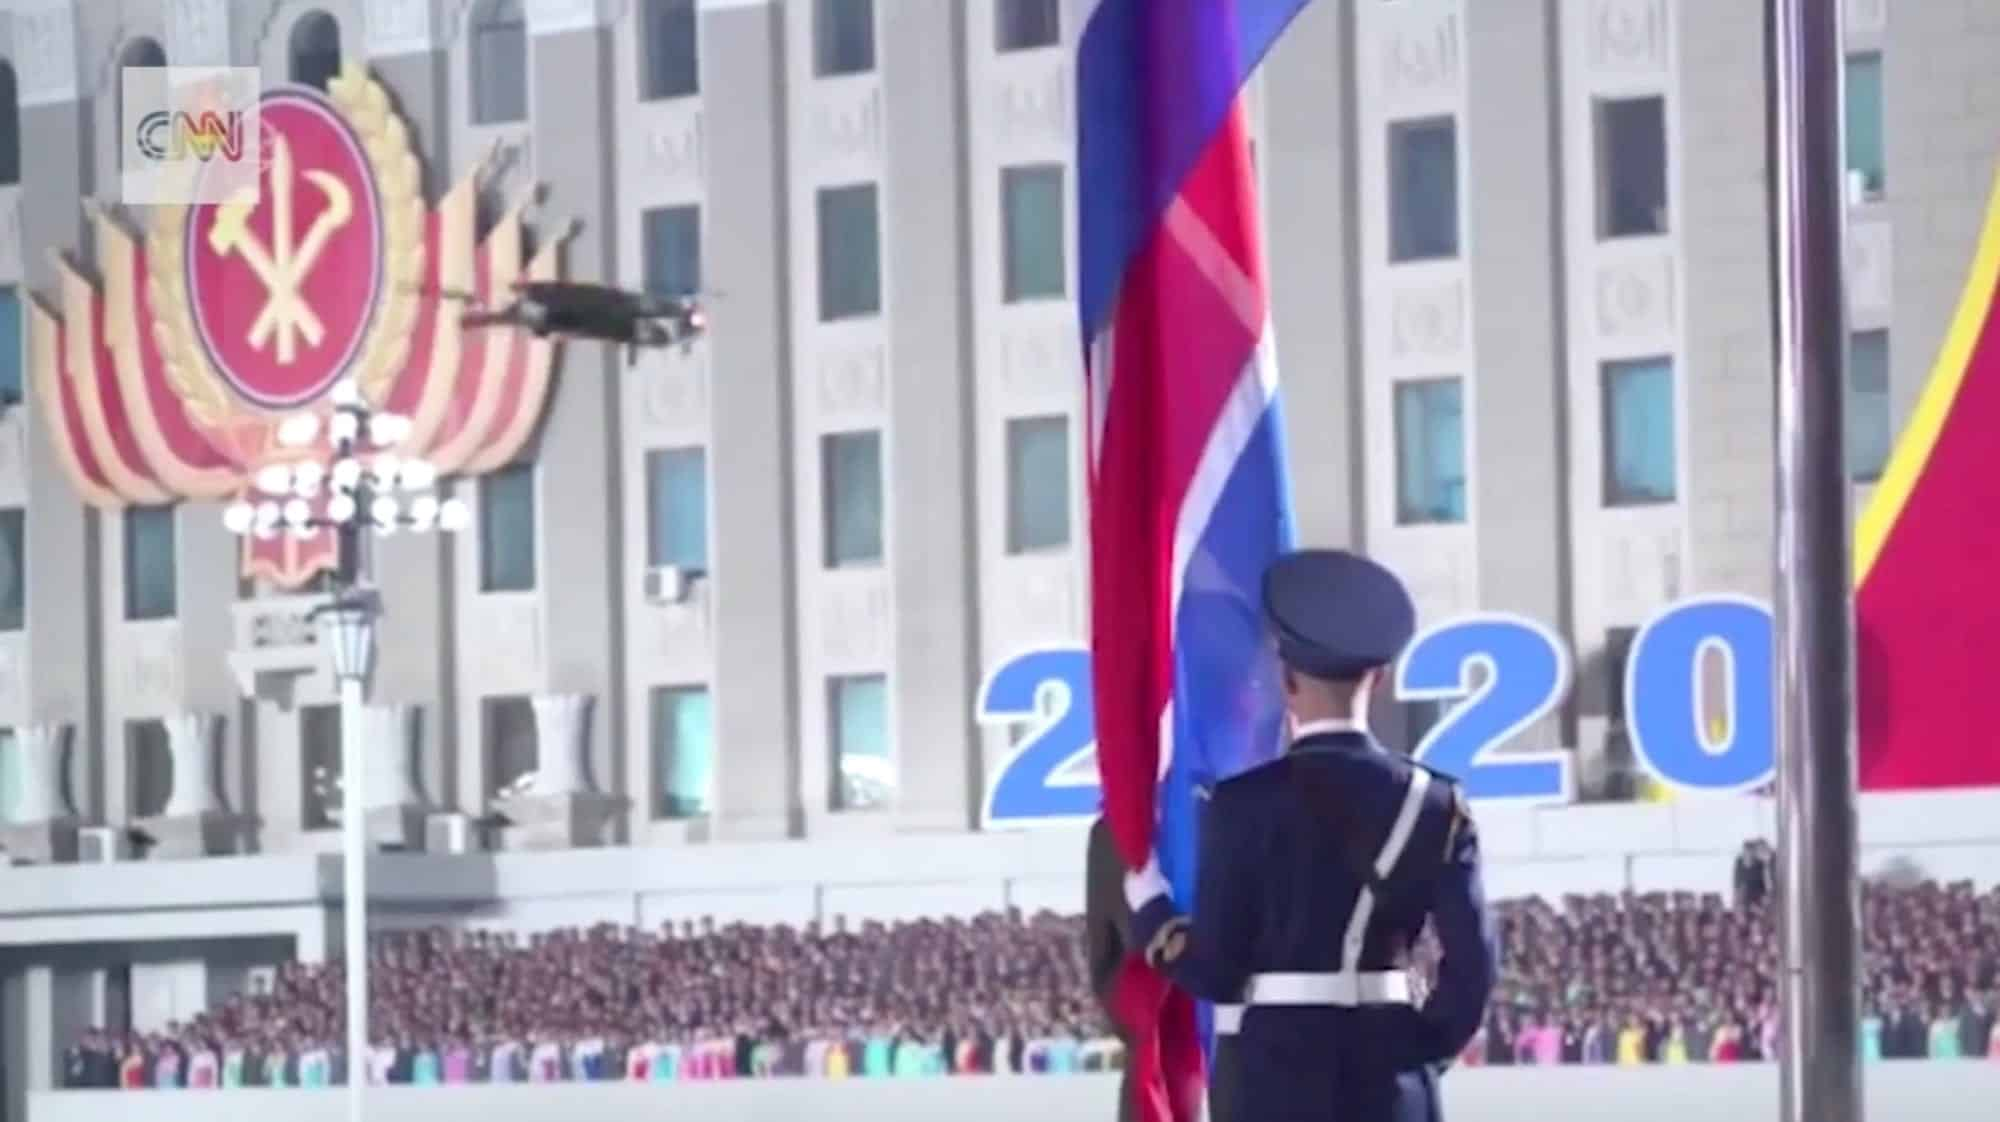 DJI Mavic 2 drone shows up during North Korea military parade